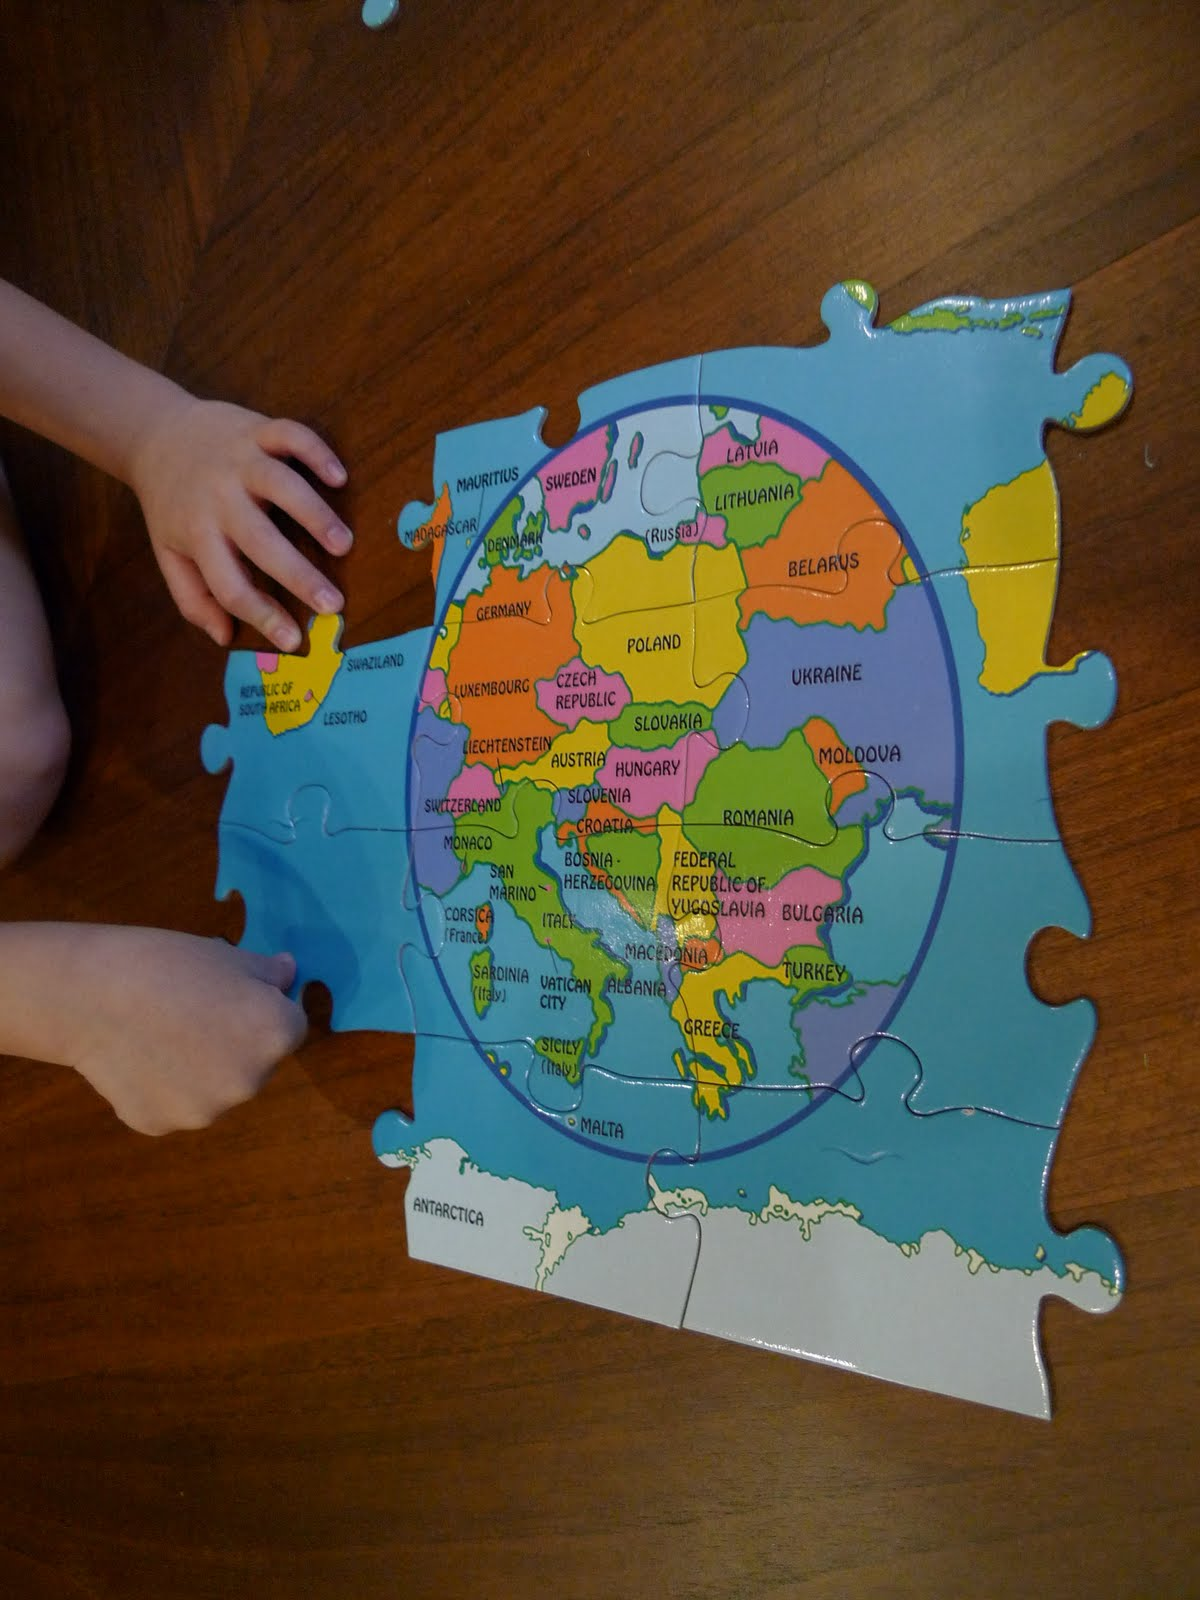 The pig and rabbit world map puzzle i then let emily do that section of the puzzle herself using just the selected pieces this is emily working on the europe section of the map gumiabroncs Choice Image